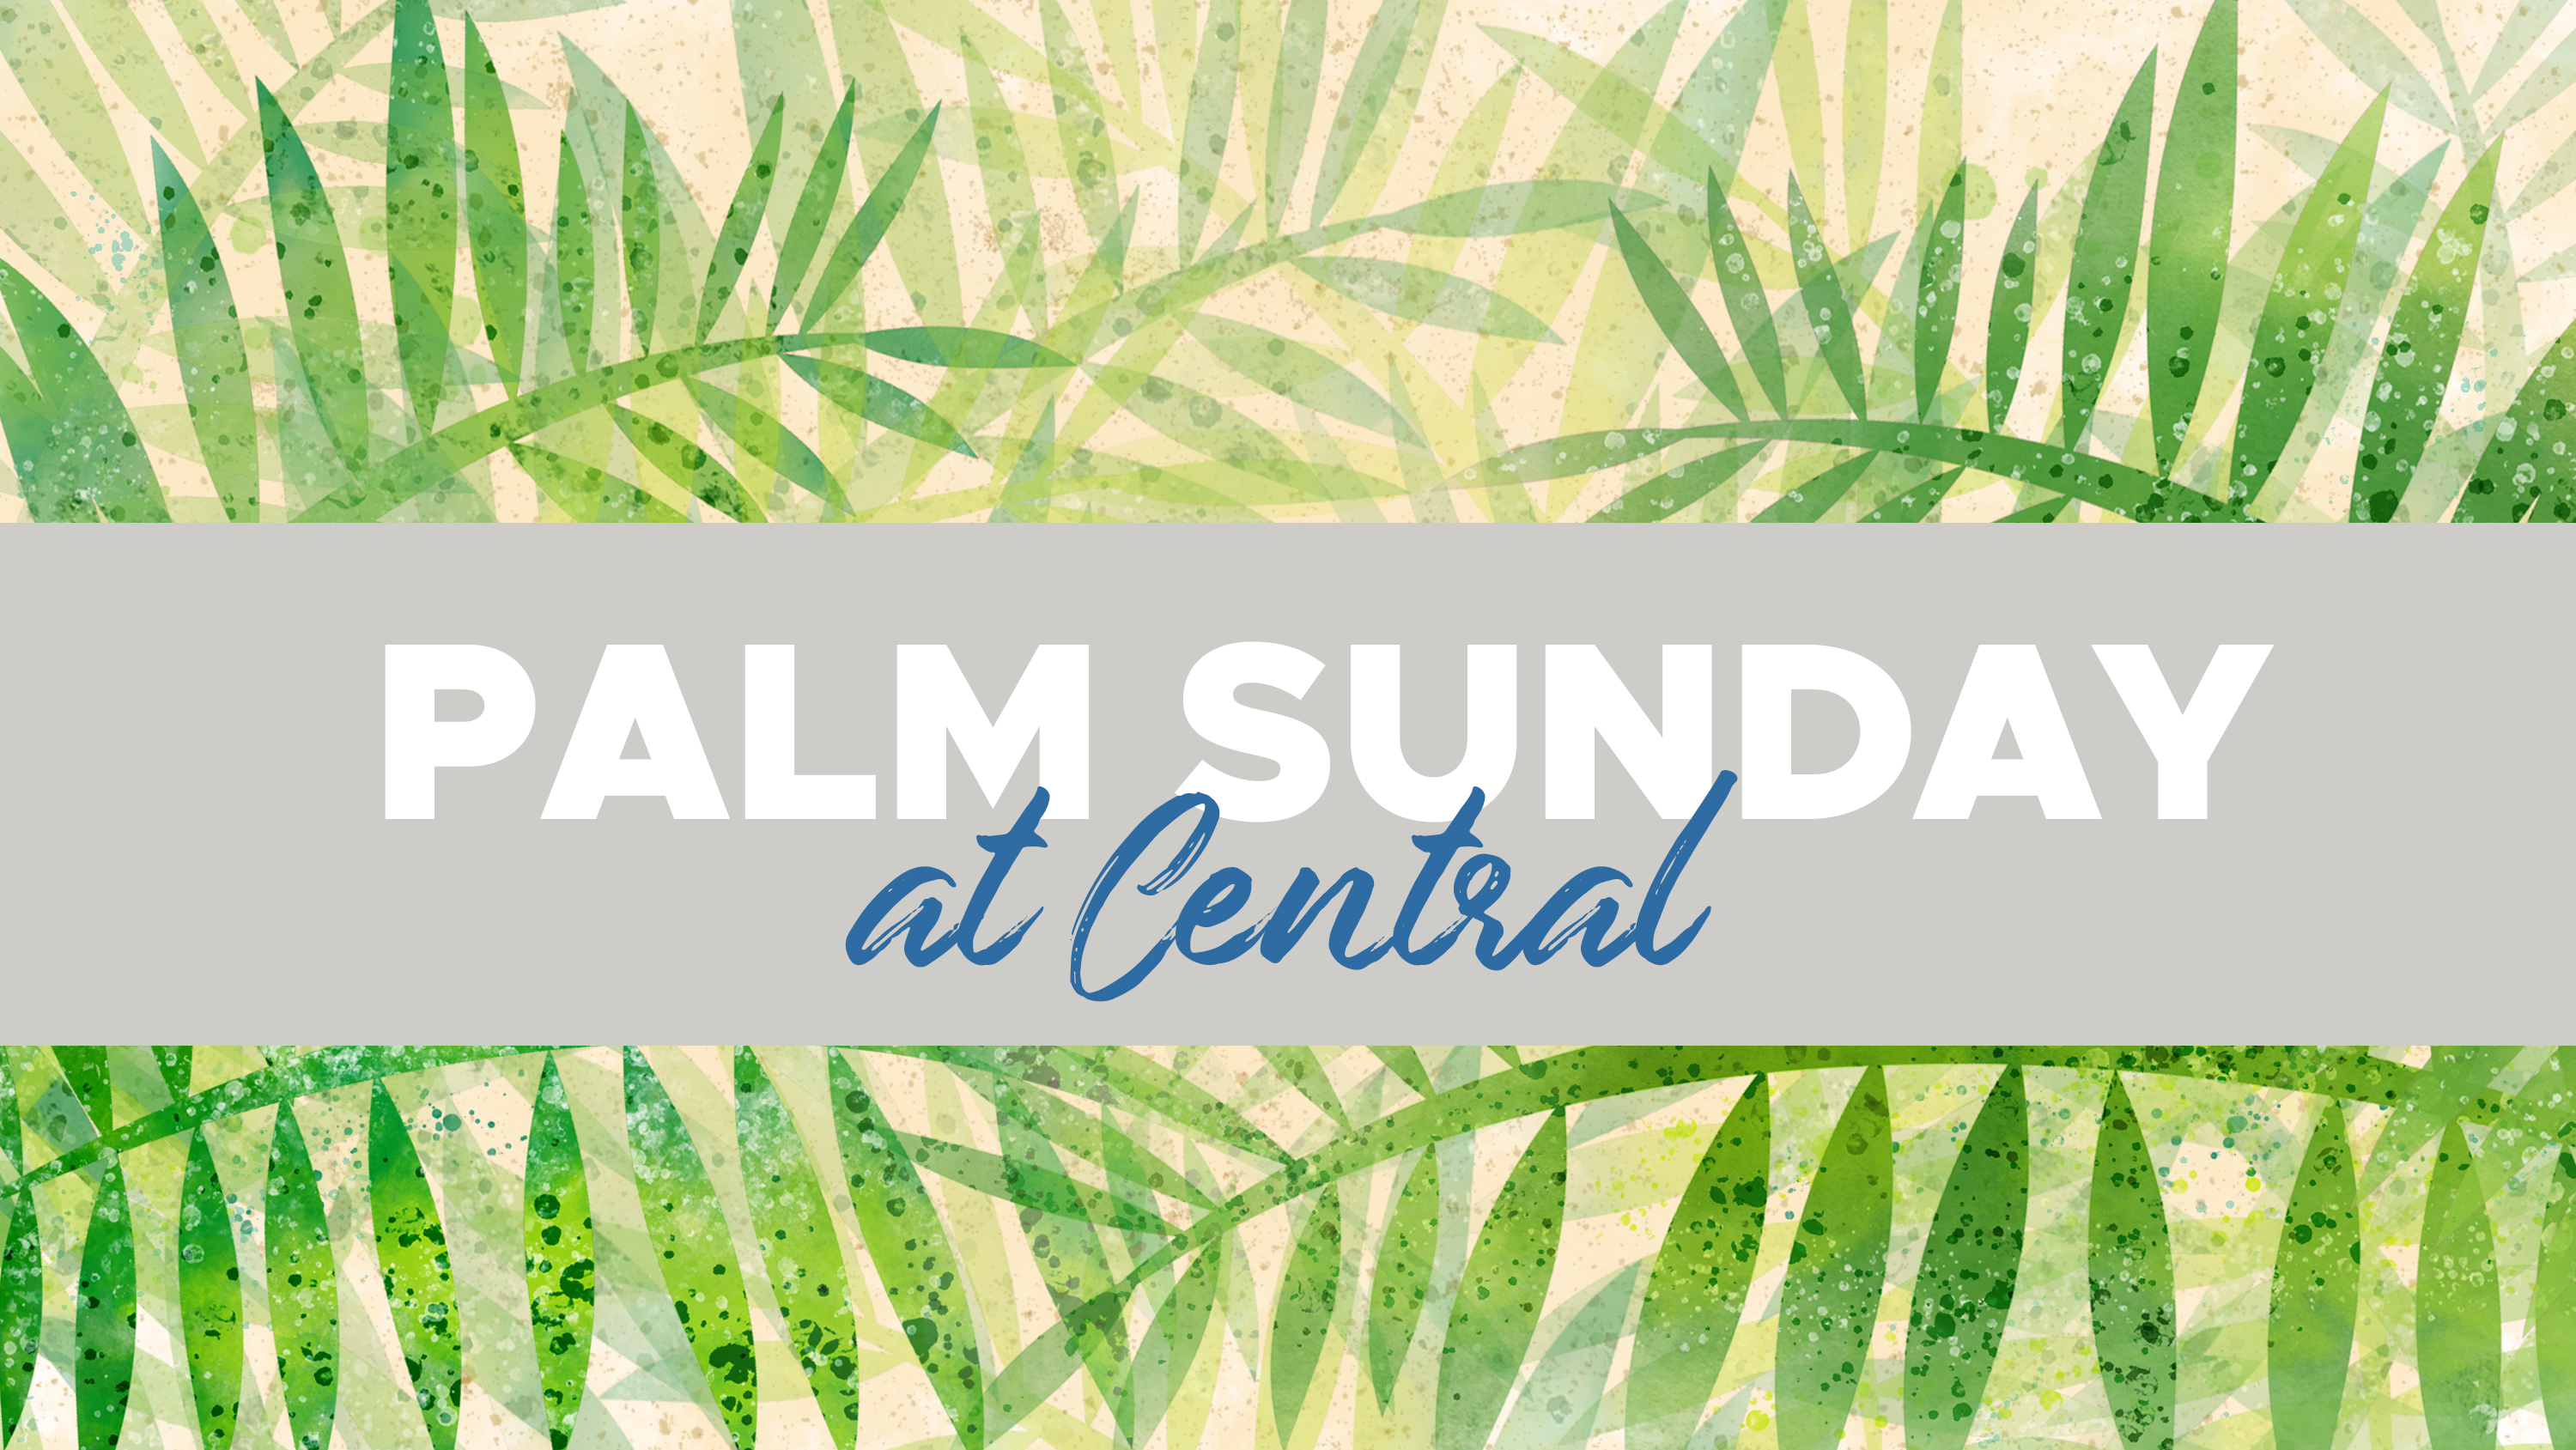 Palm Sunday 2019 ad image